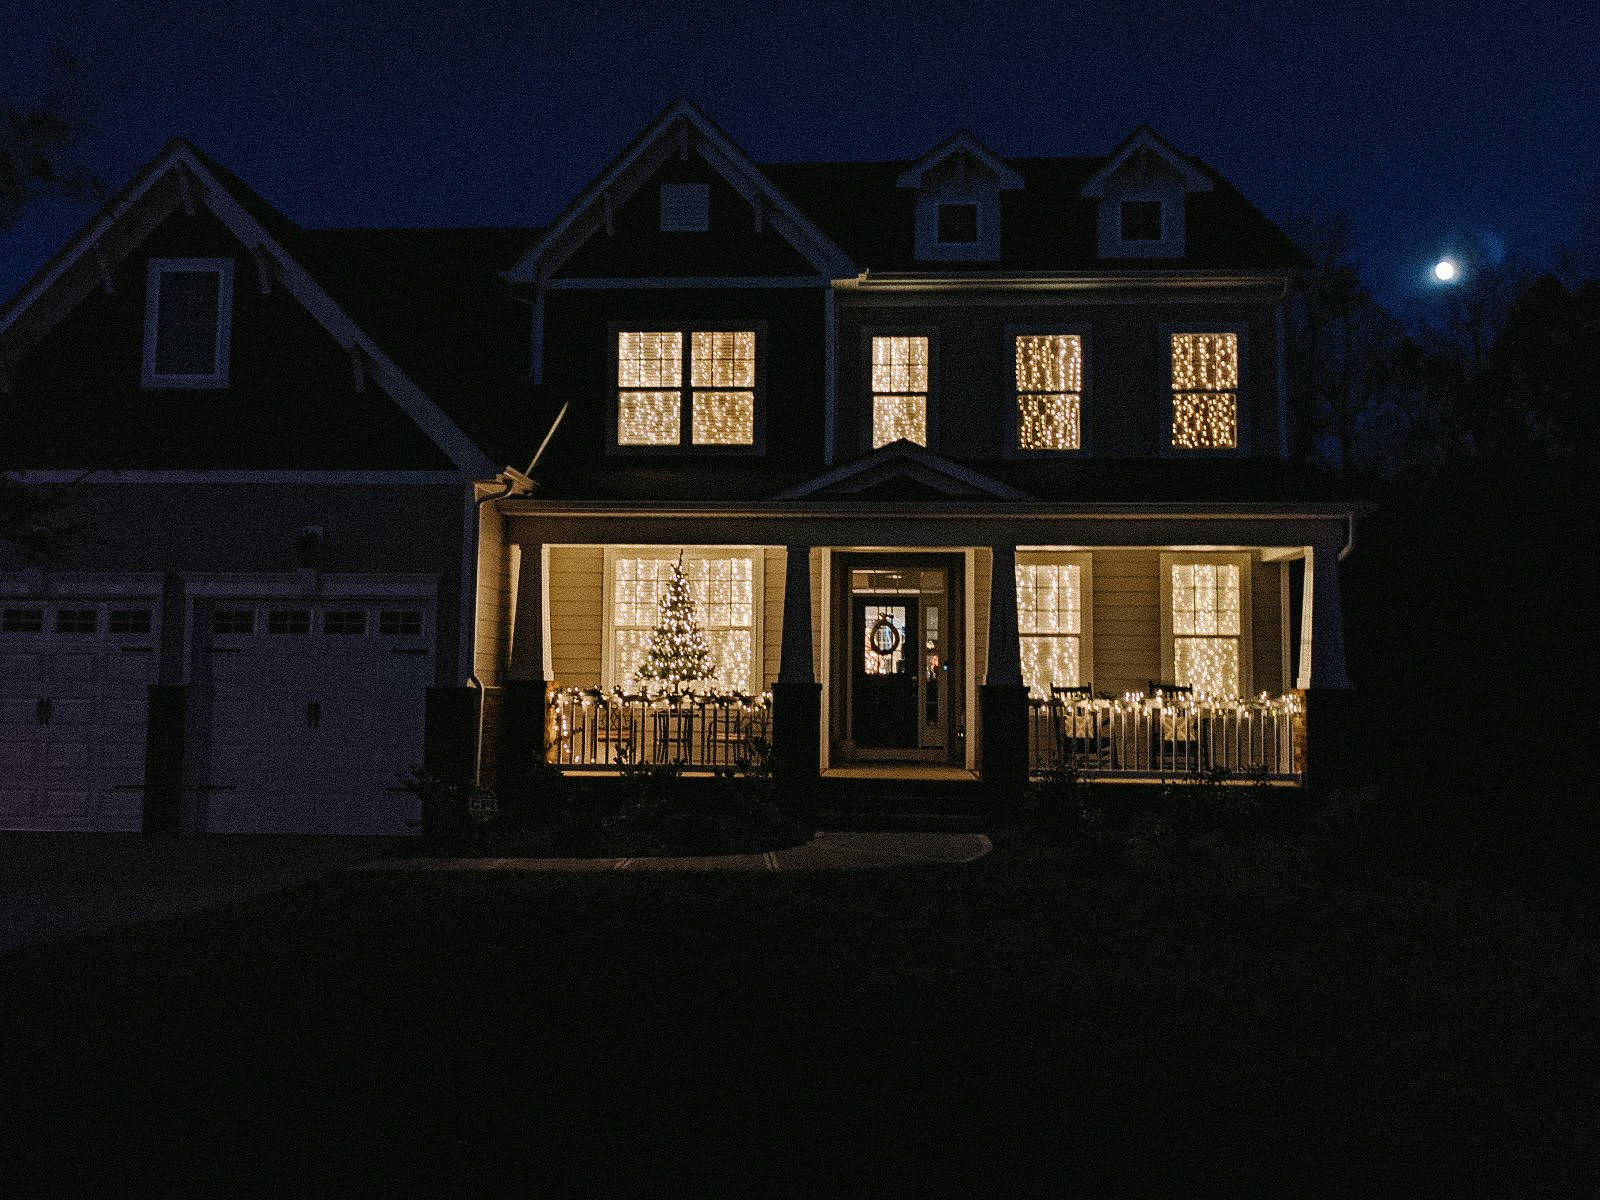 Exterior photo of two story house.Windows are filled and illuminated with Christmas lights